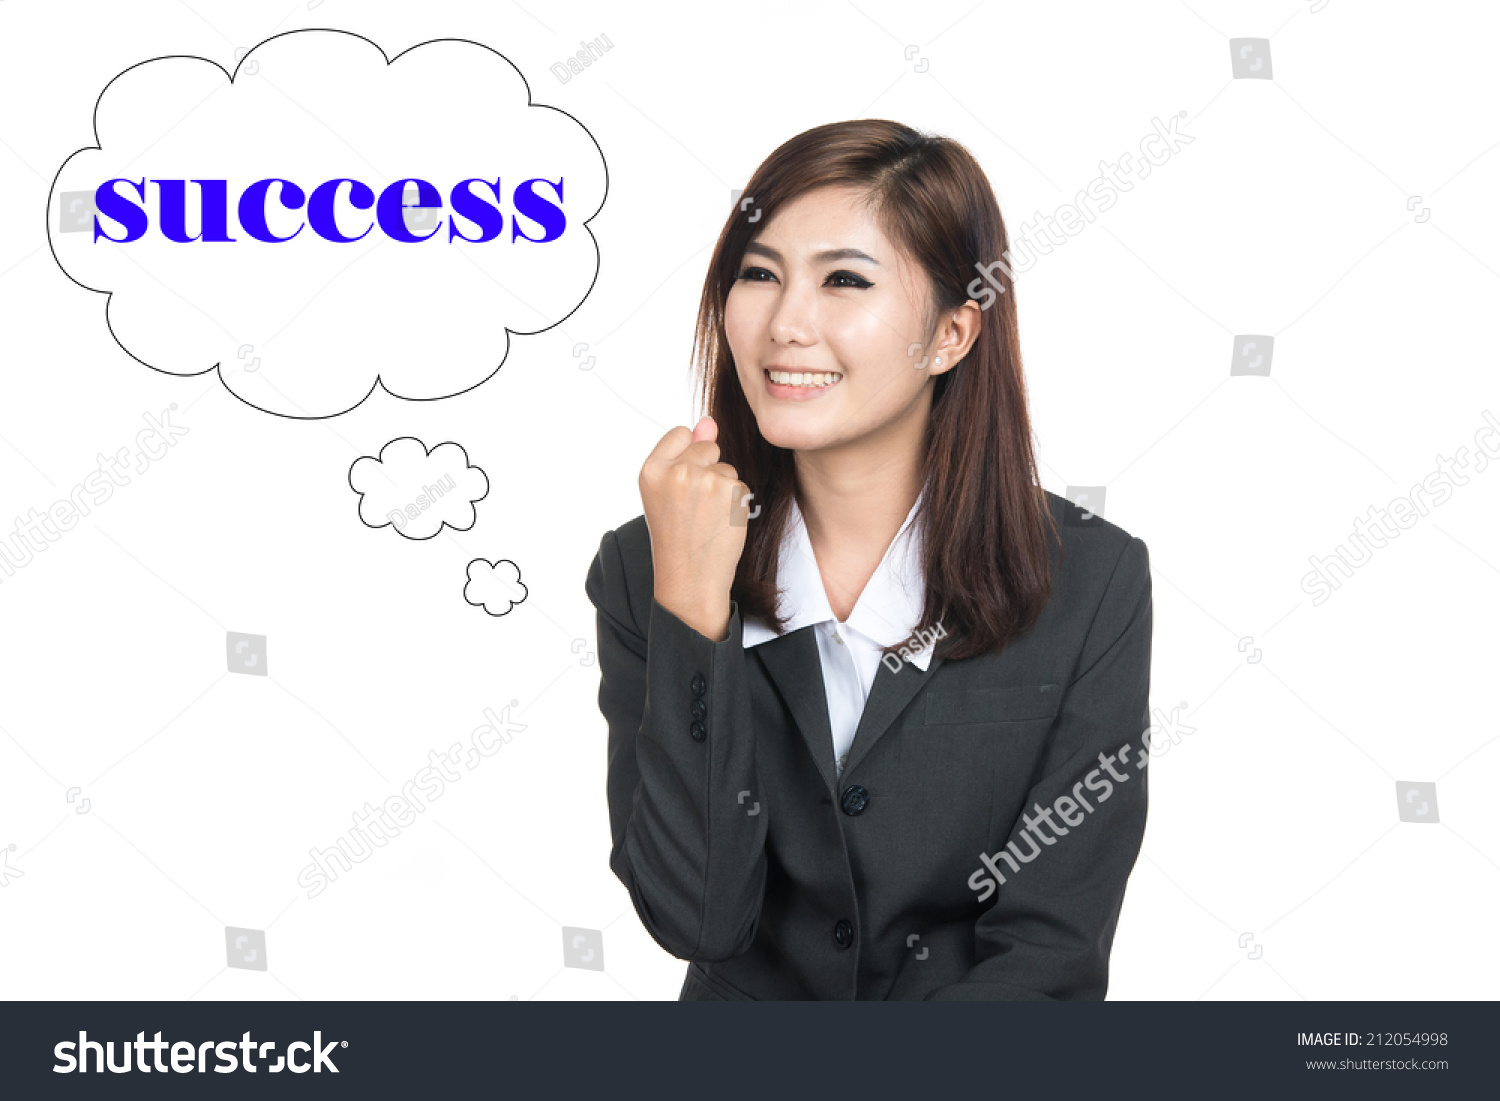 thinking success w looking up on speech bubble thai girl save to a lightbox